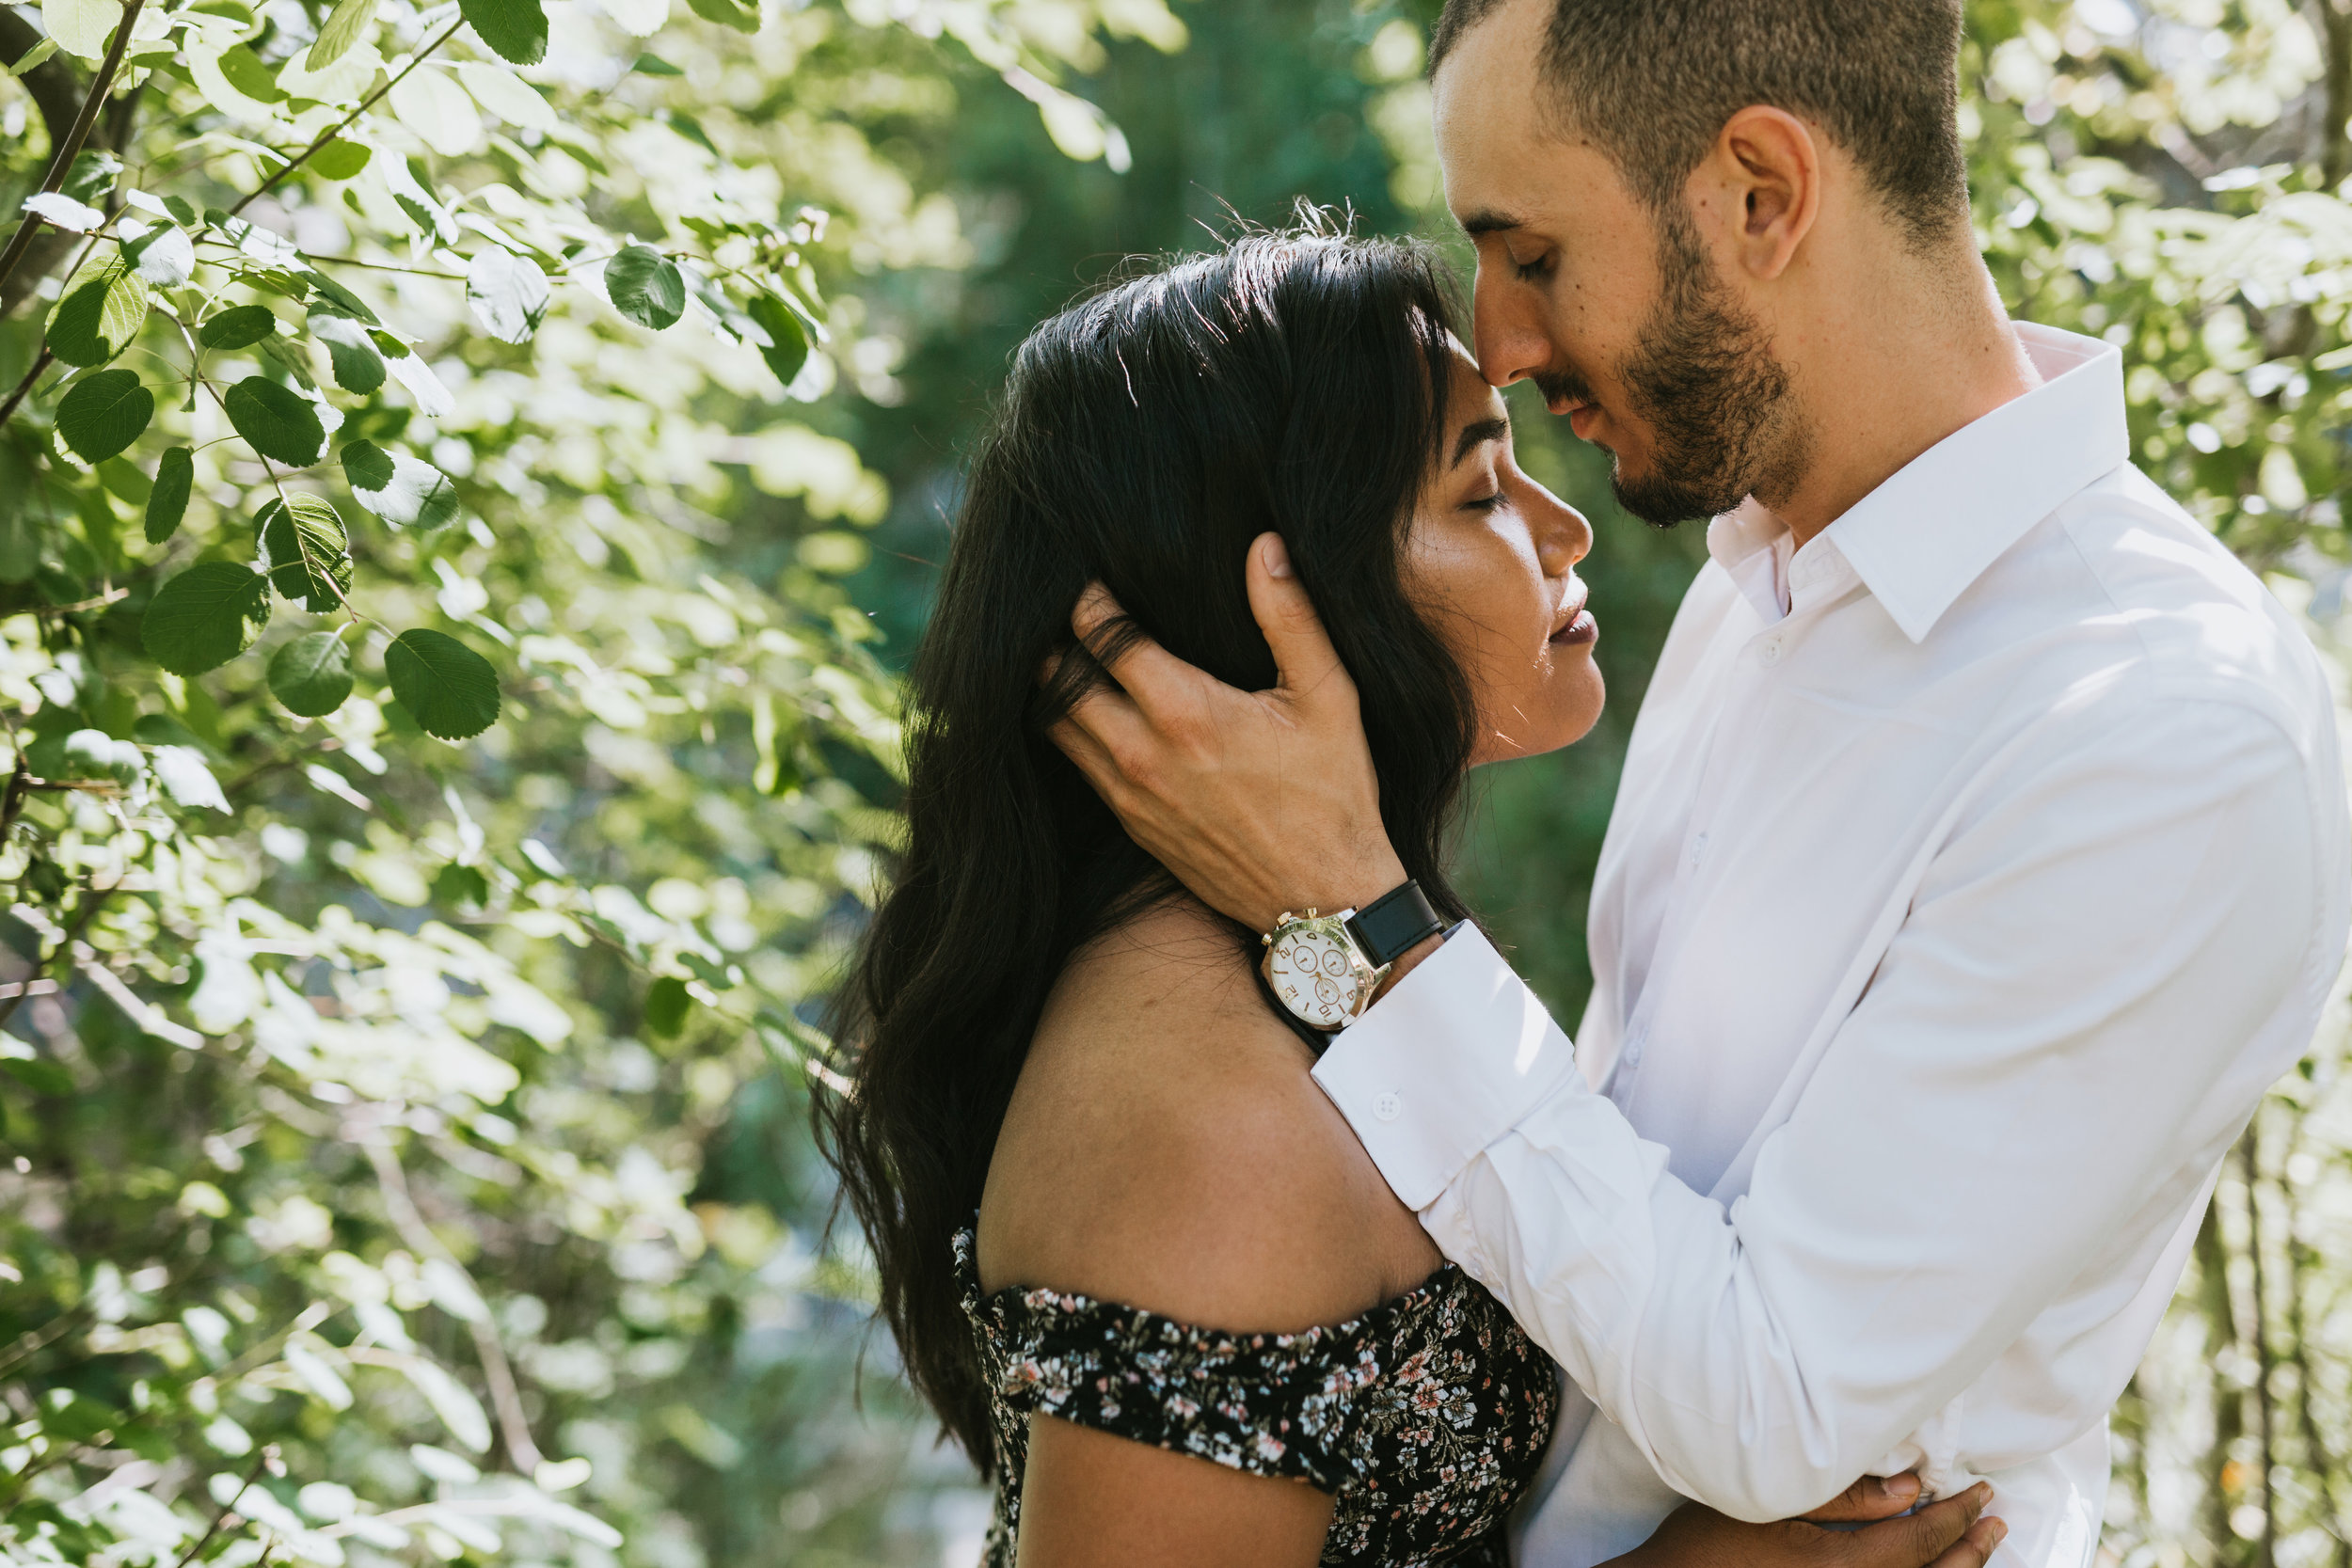 oliver-rabanes-vancouver-surrey-whytecliff-park-proposal-engagement-photography-06.JPG